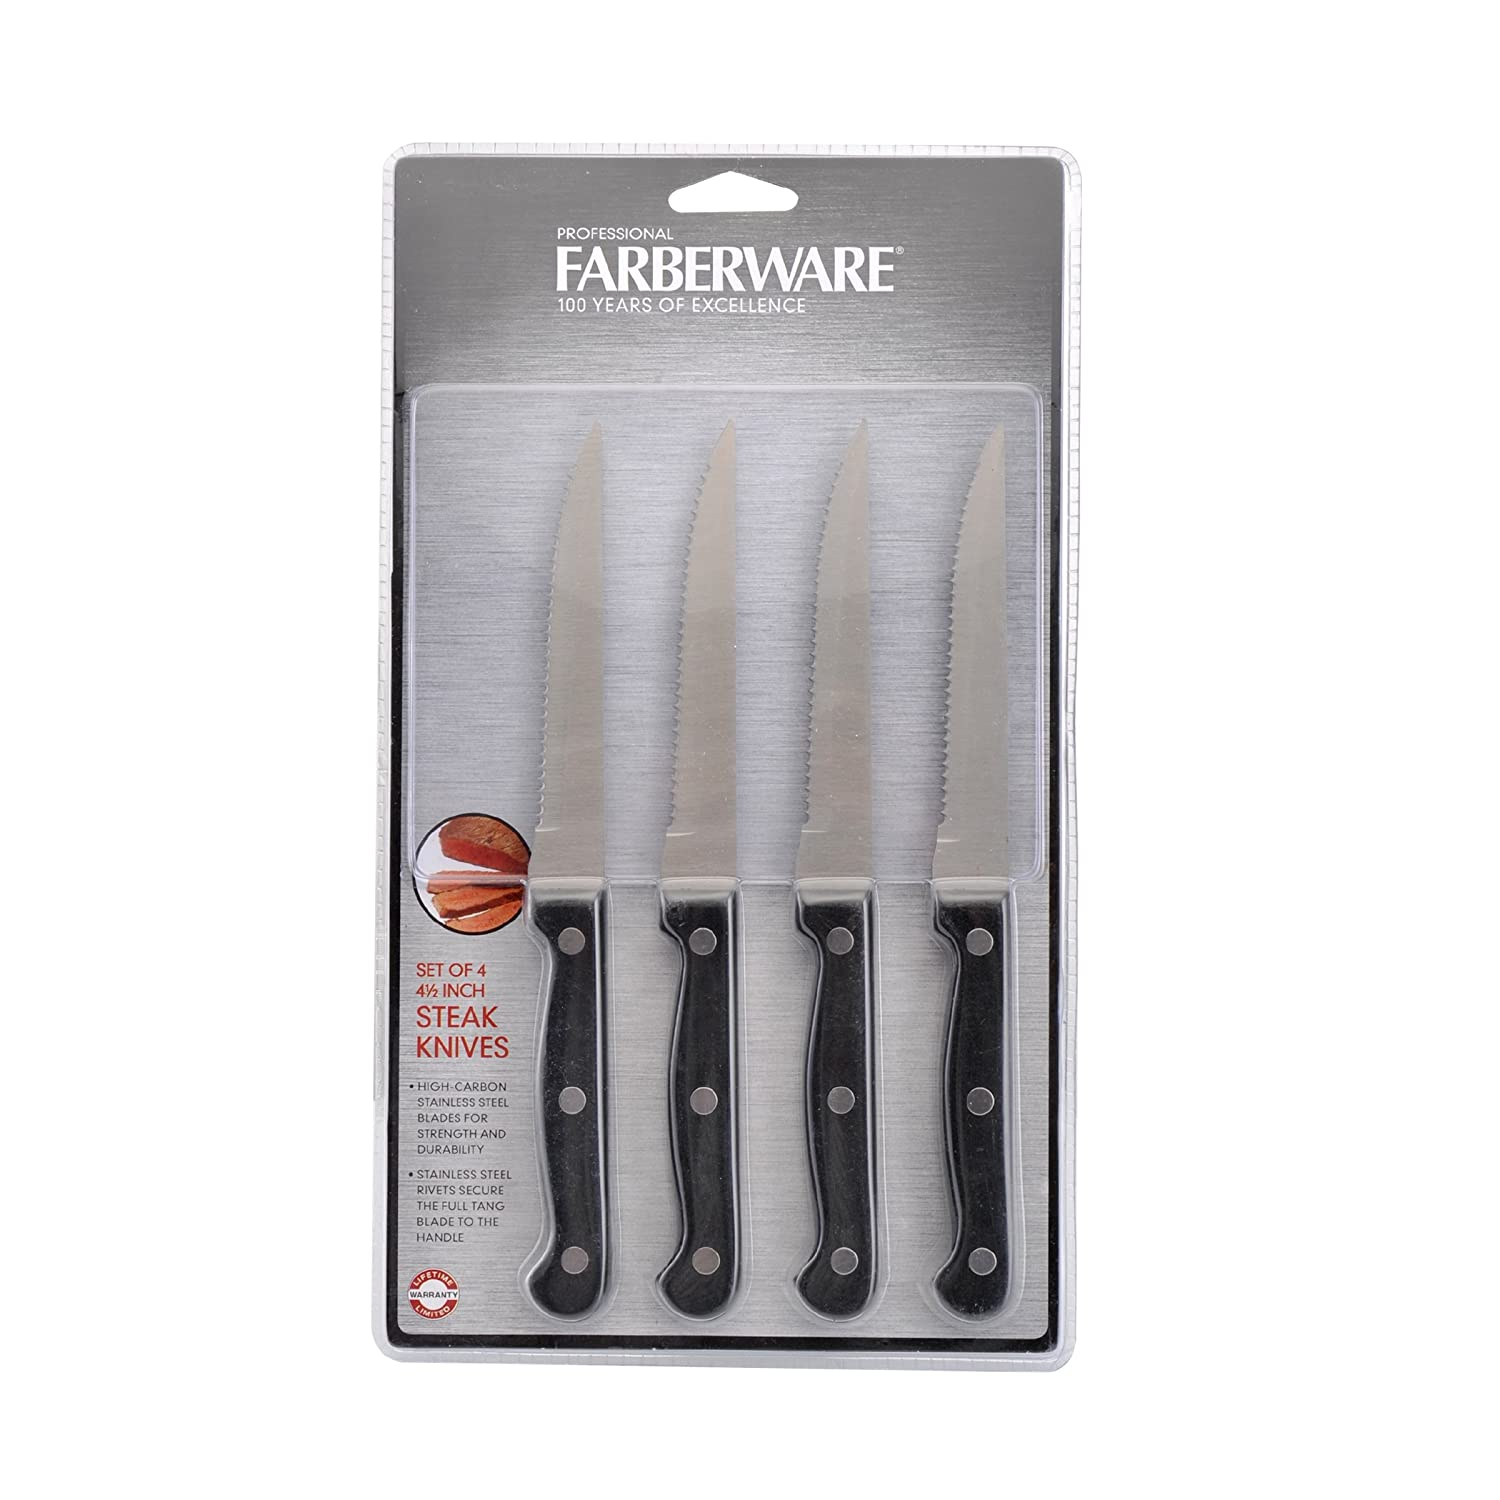 Amazon.com: Farberware juego de 4 con sello Triple remache ...